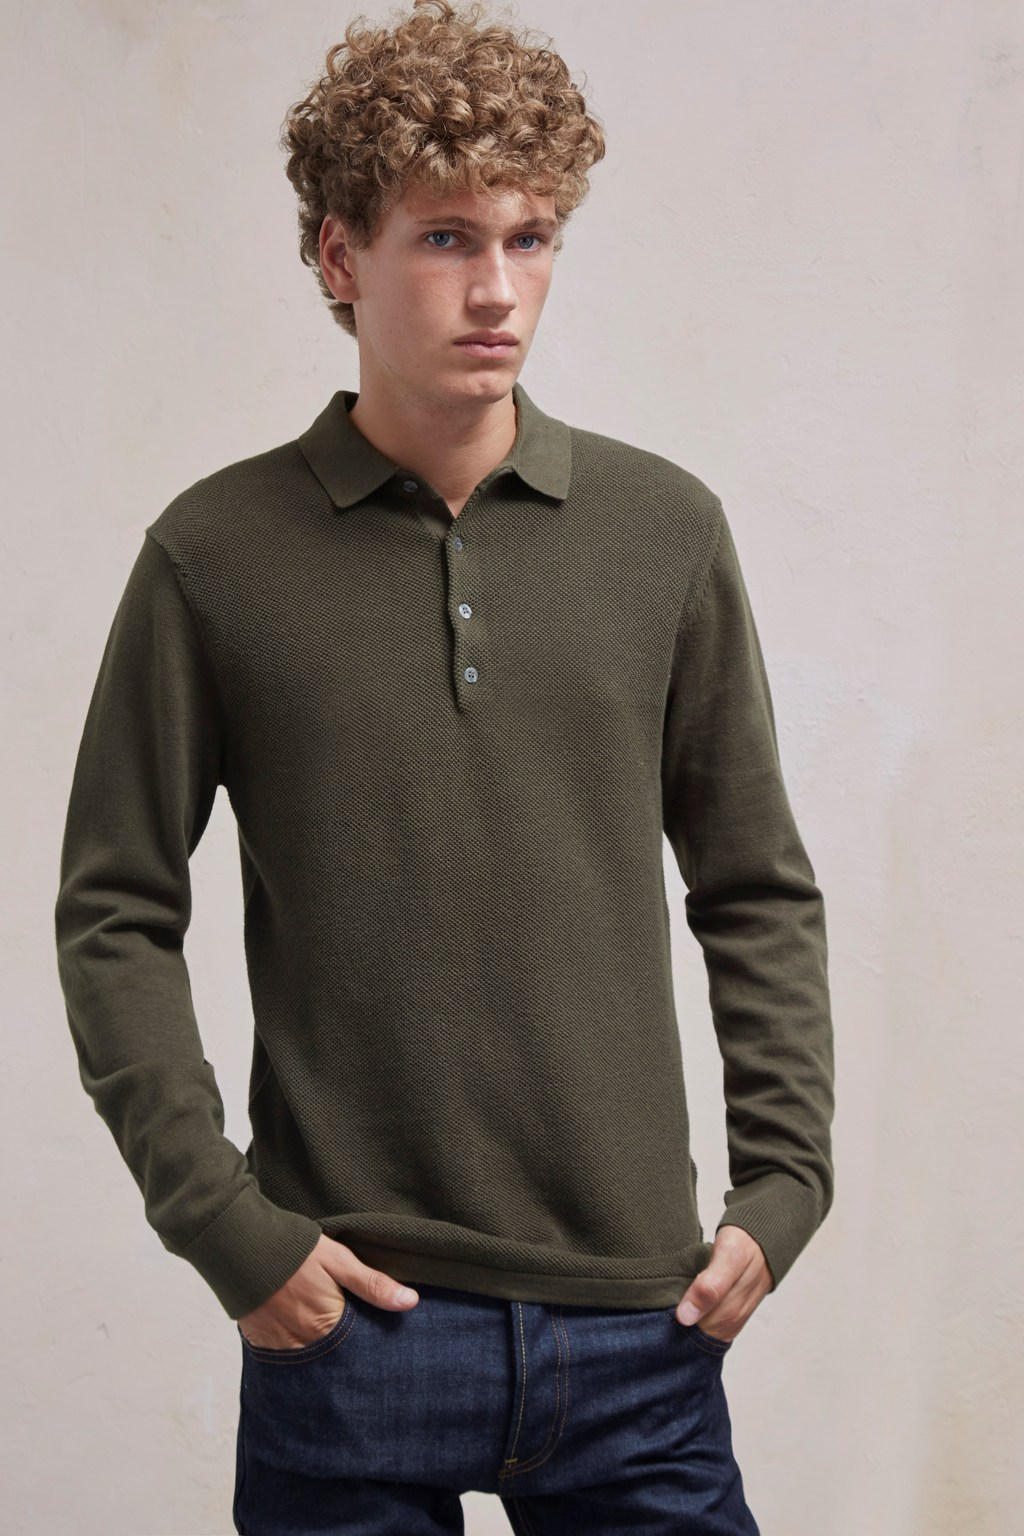 6c1d3be6f Textured Knit Long Sleeved Polo Shirt. loading images... loading images.